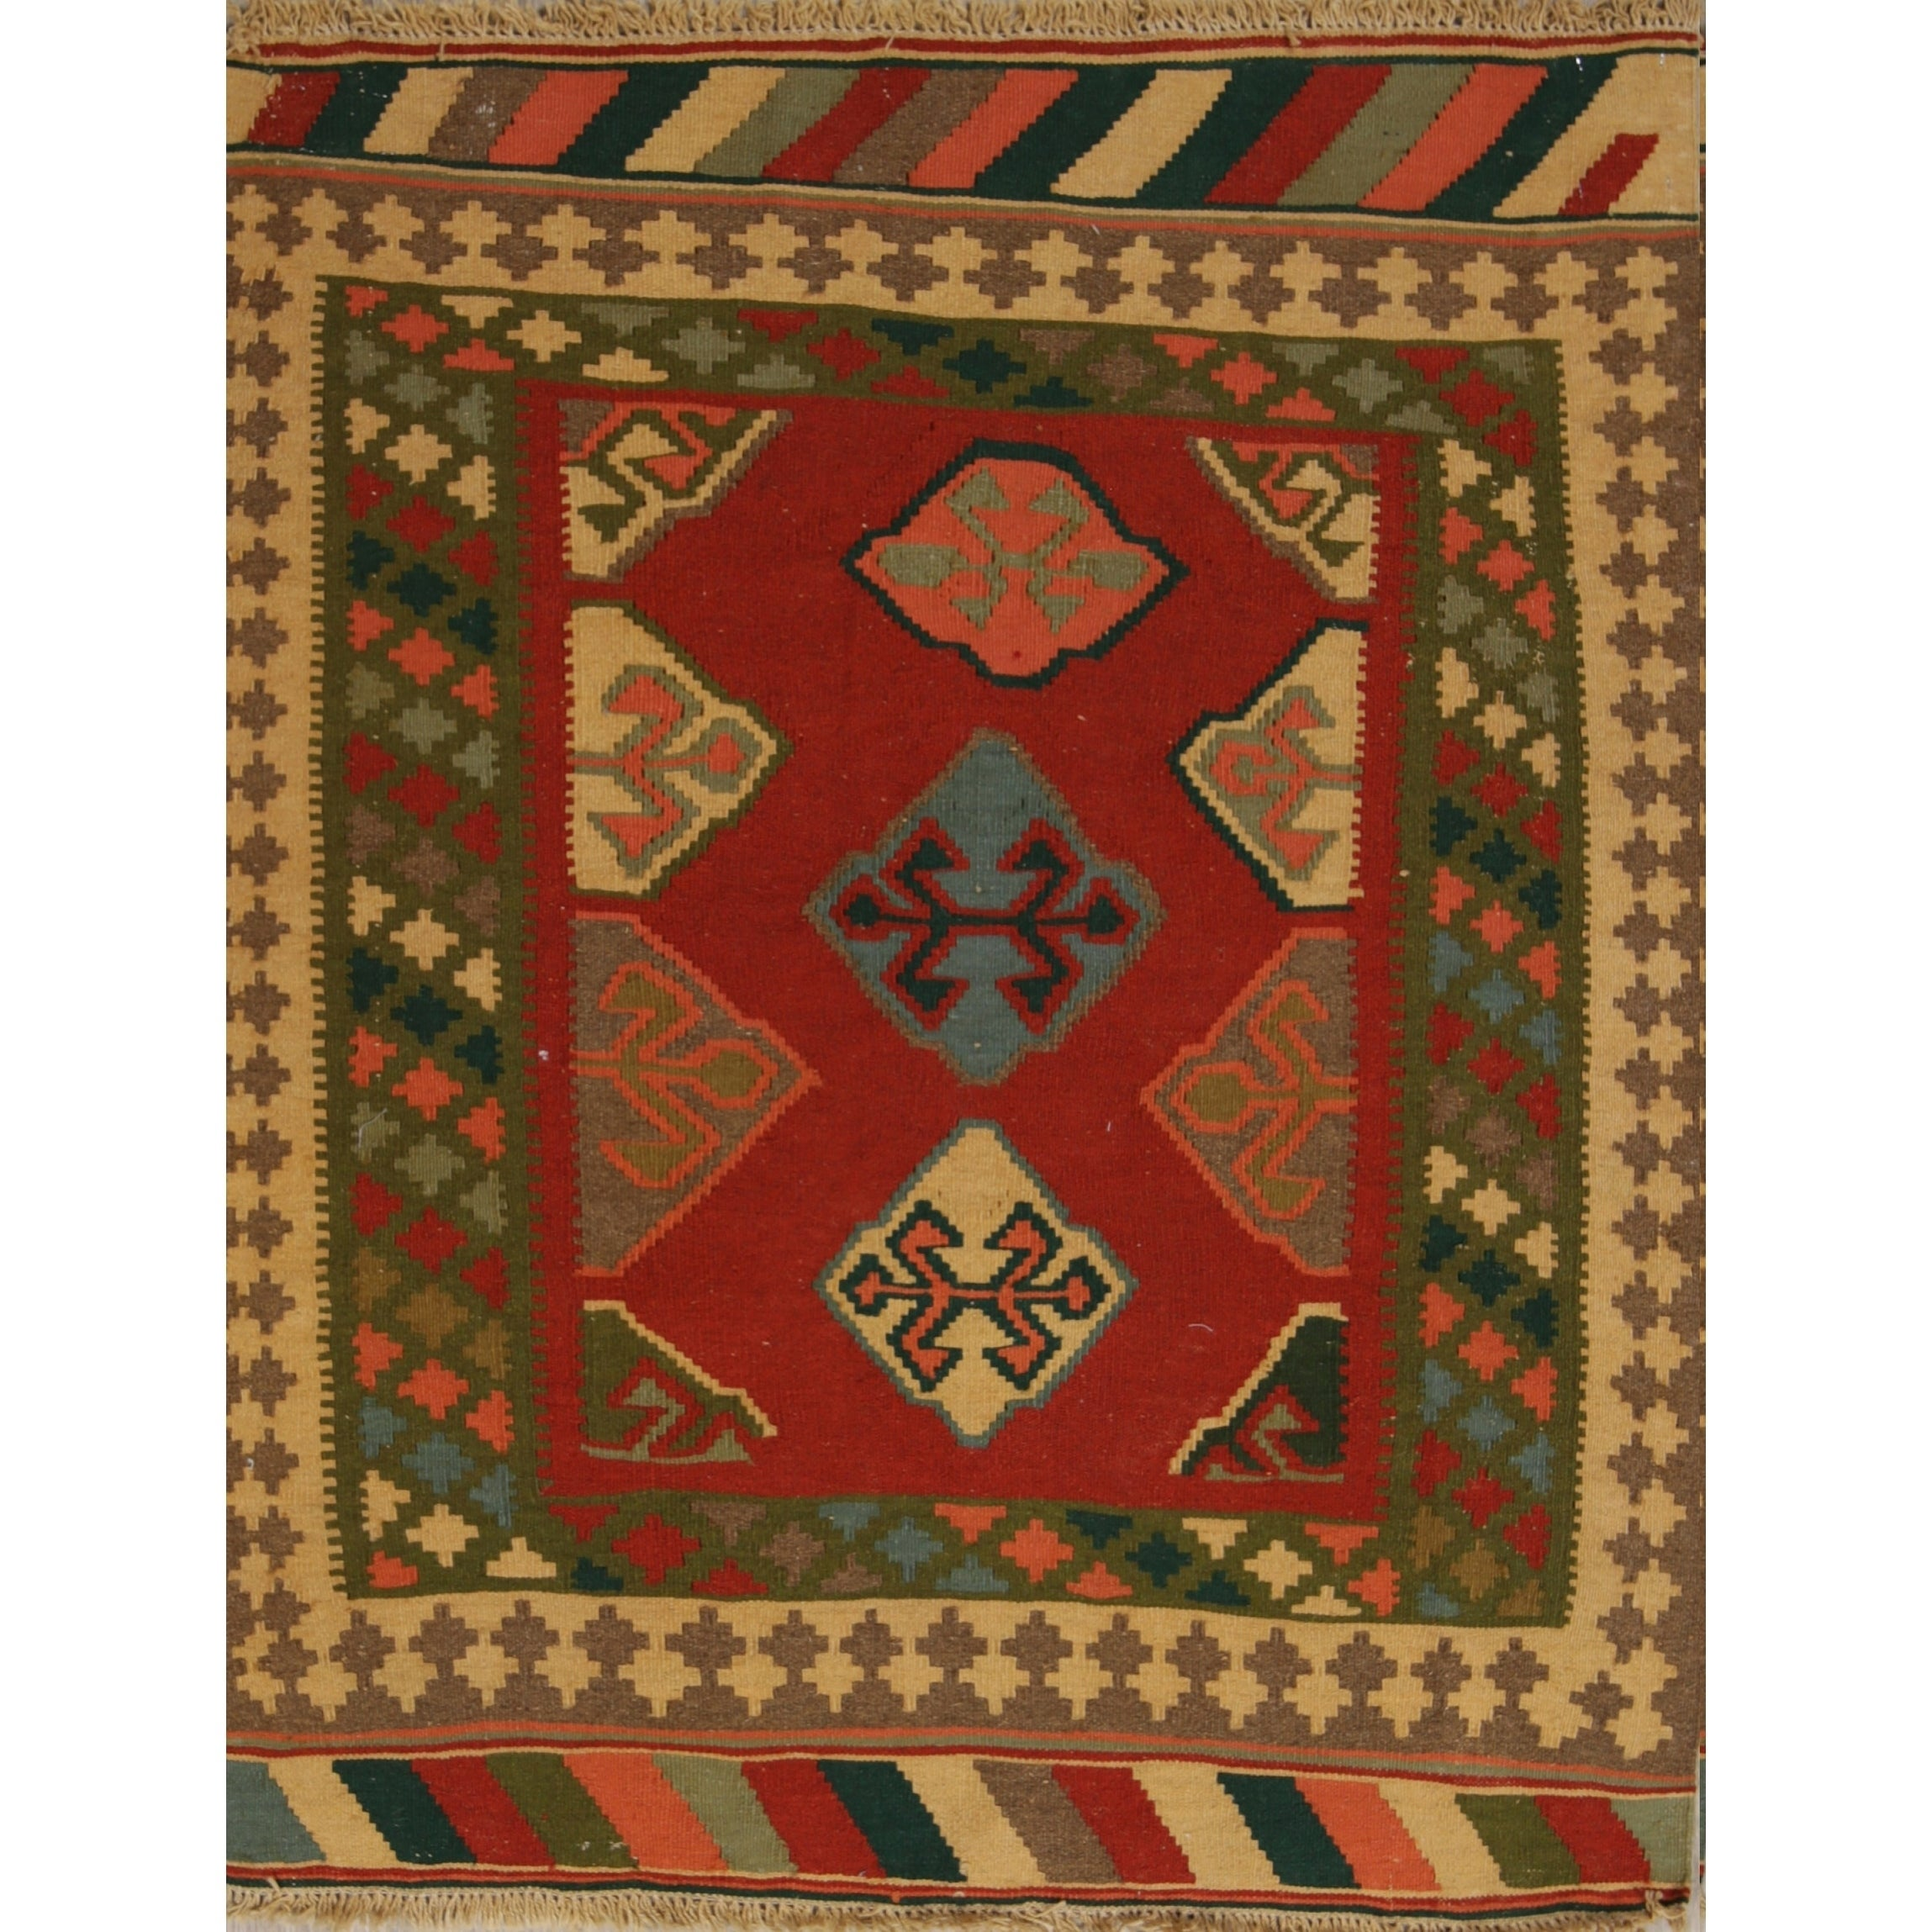 Kilim Geometric Hand Woven Wool Persian Area Rug 4 8 X 3 9 On Sale Overstock 27122937